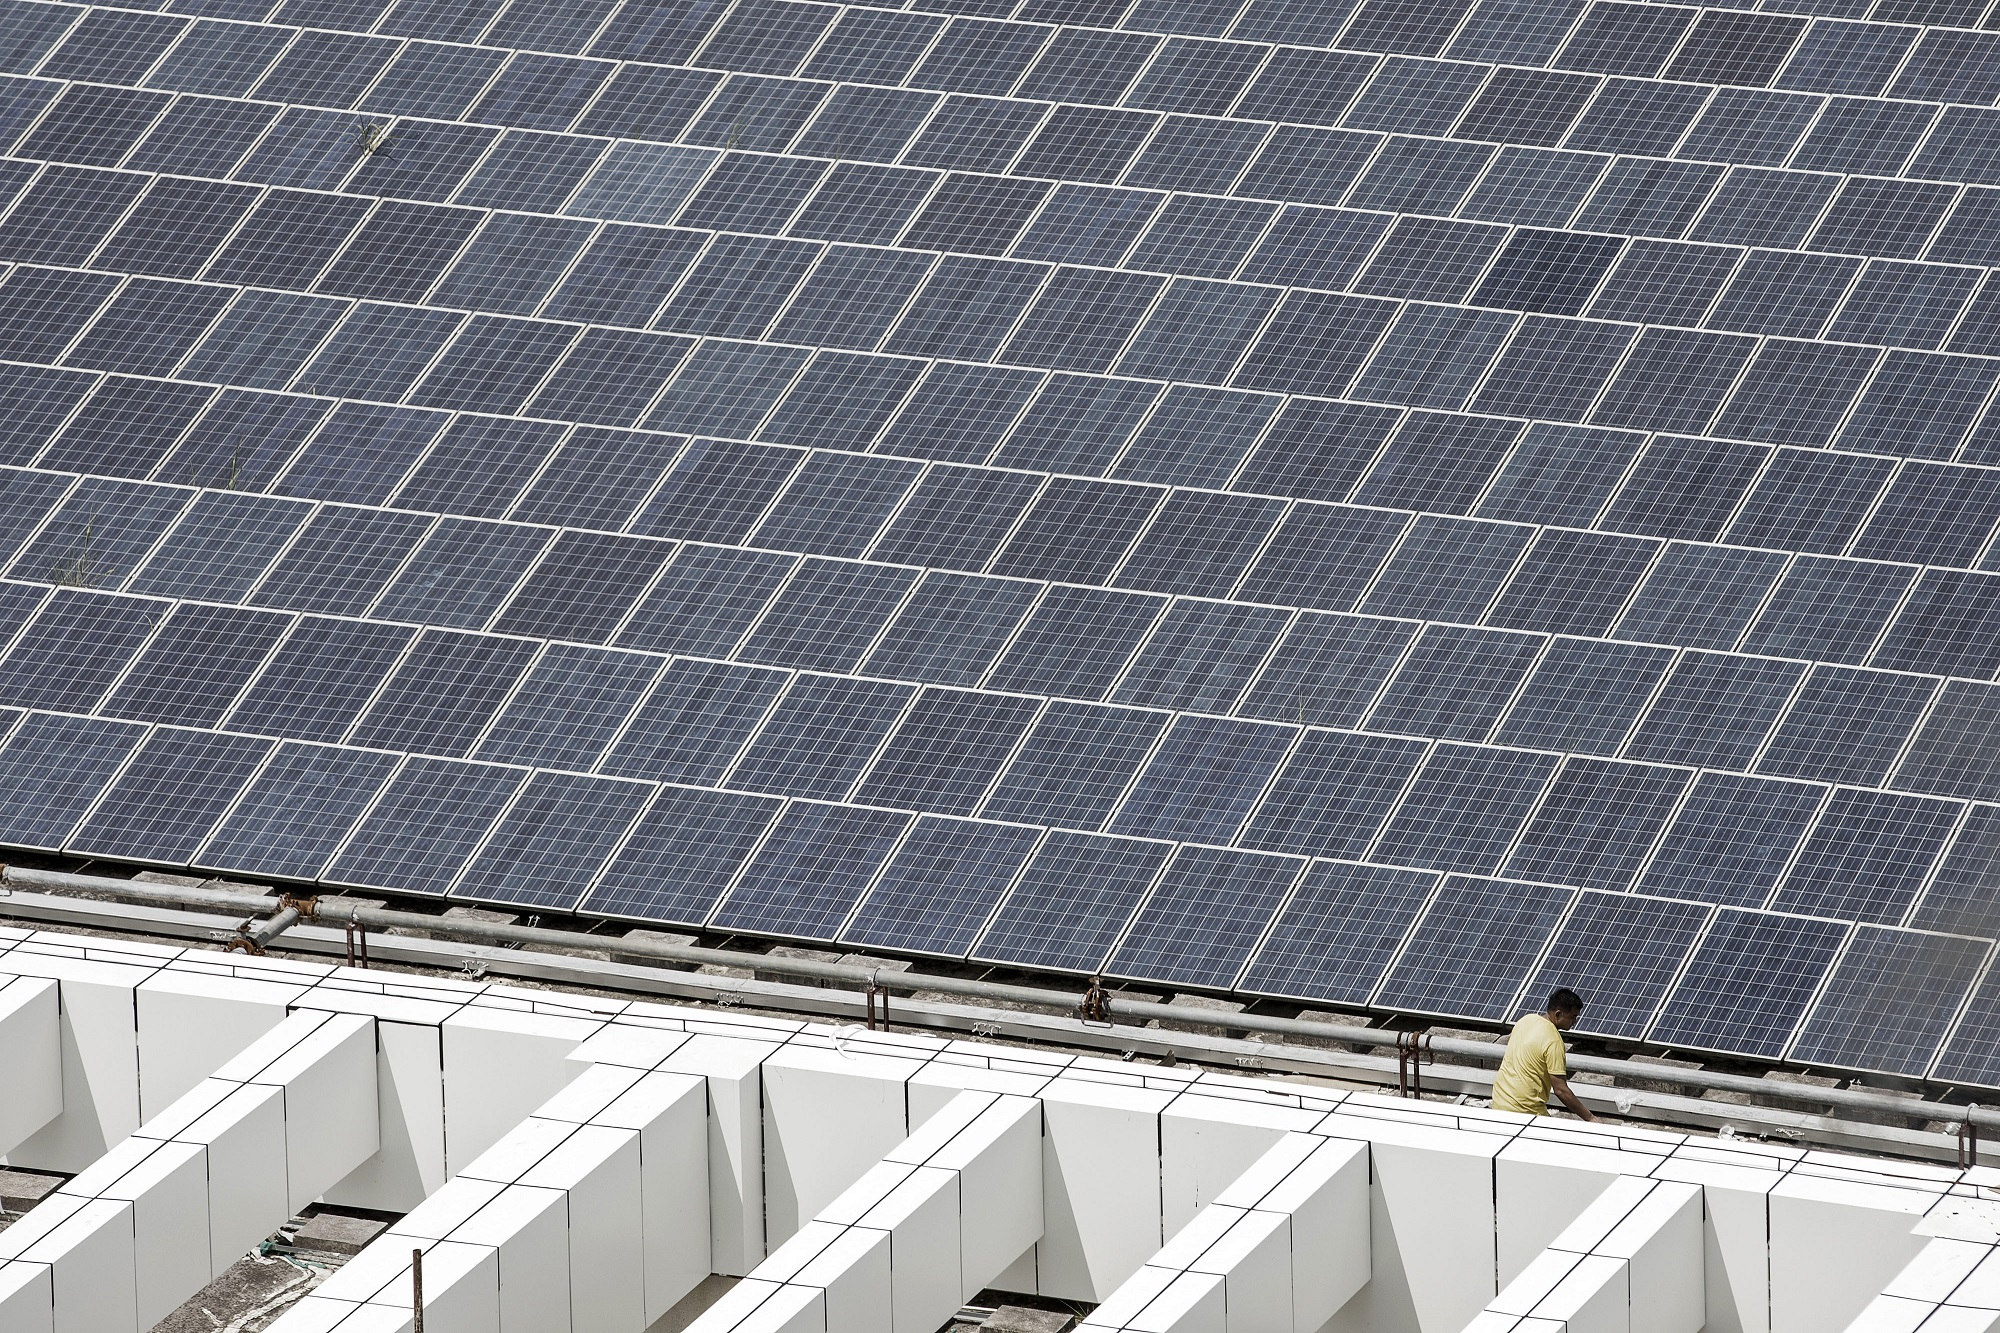 China hits record; spends over half of global PV investment